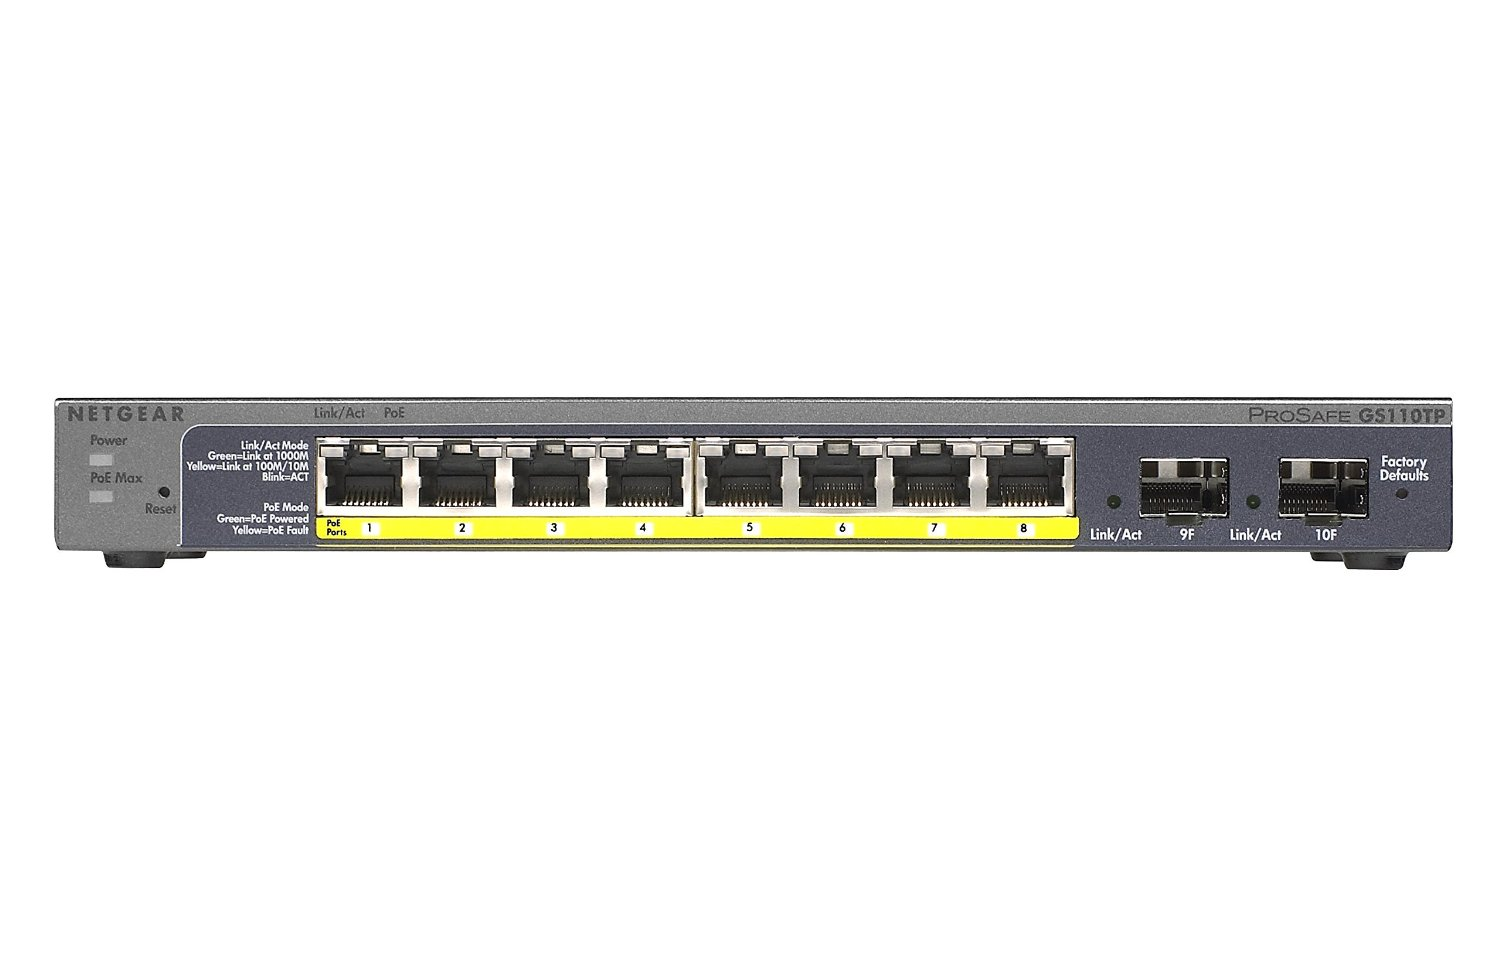 Netgear GS 110 Switch Front